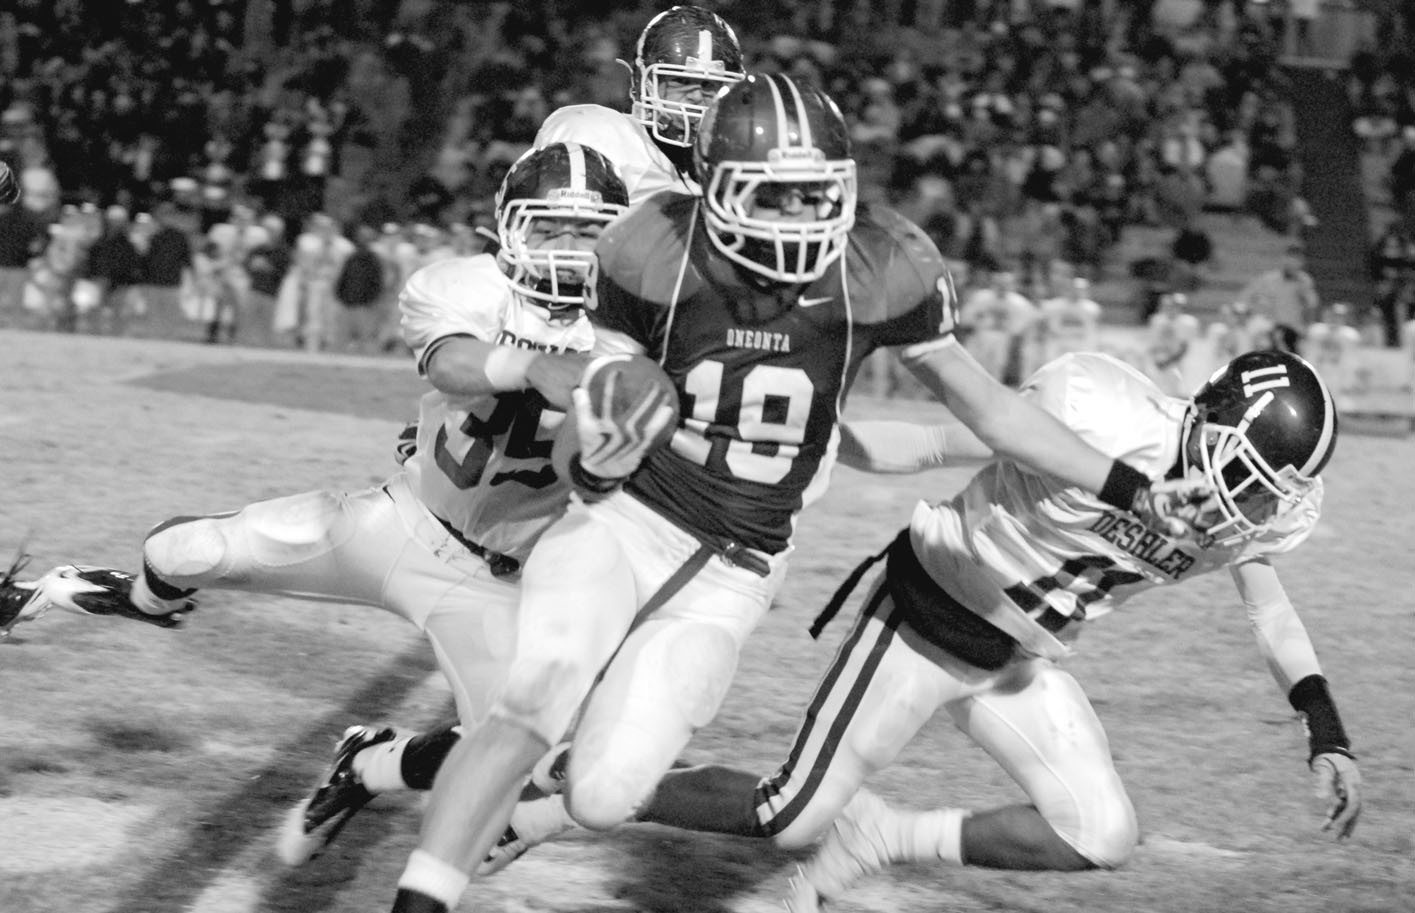 Oneonta running back Tyler Smith runs through a trio of Deshler defenders.